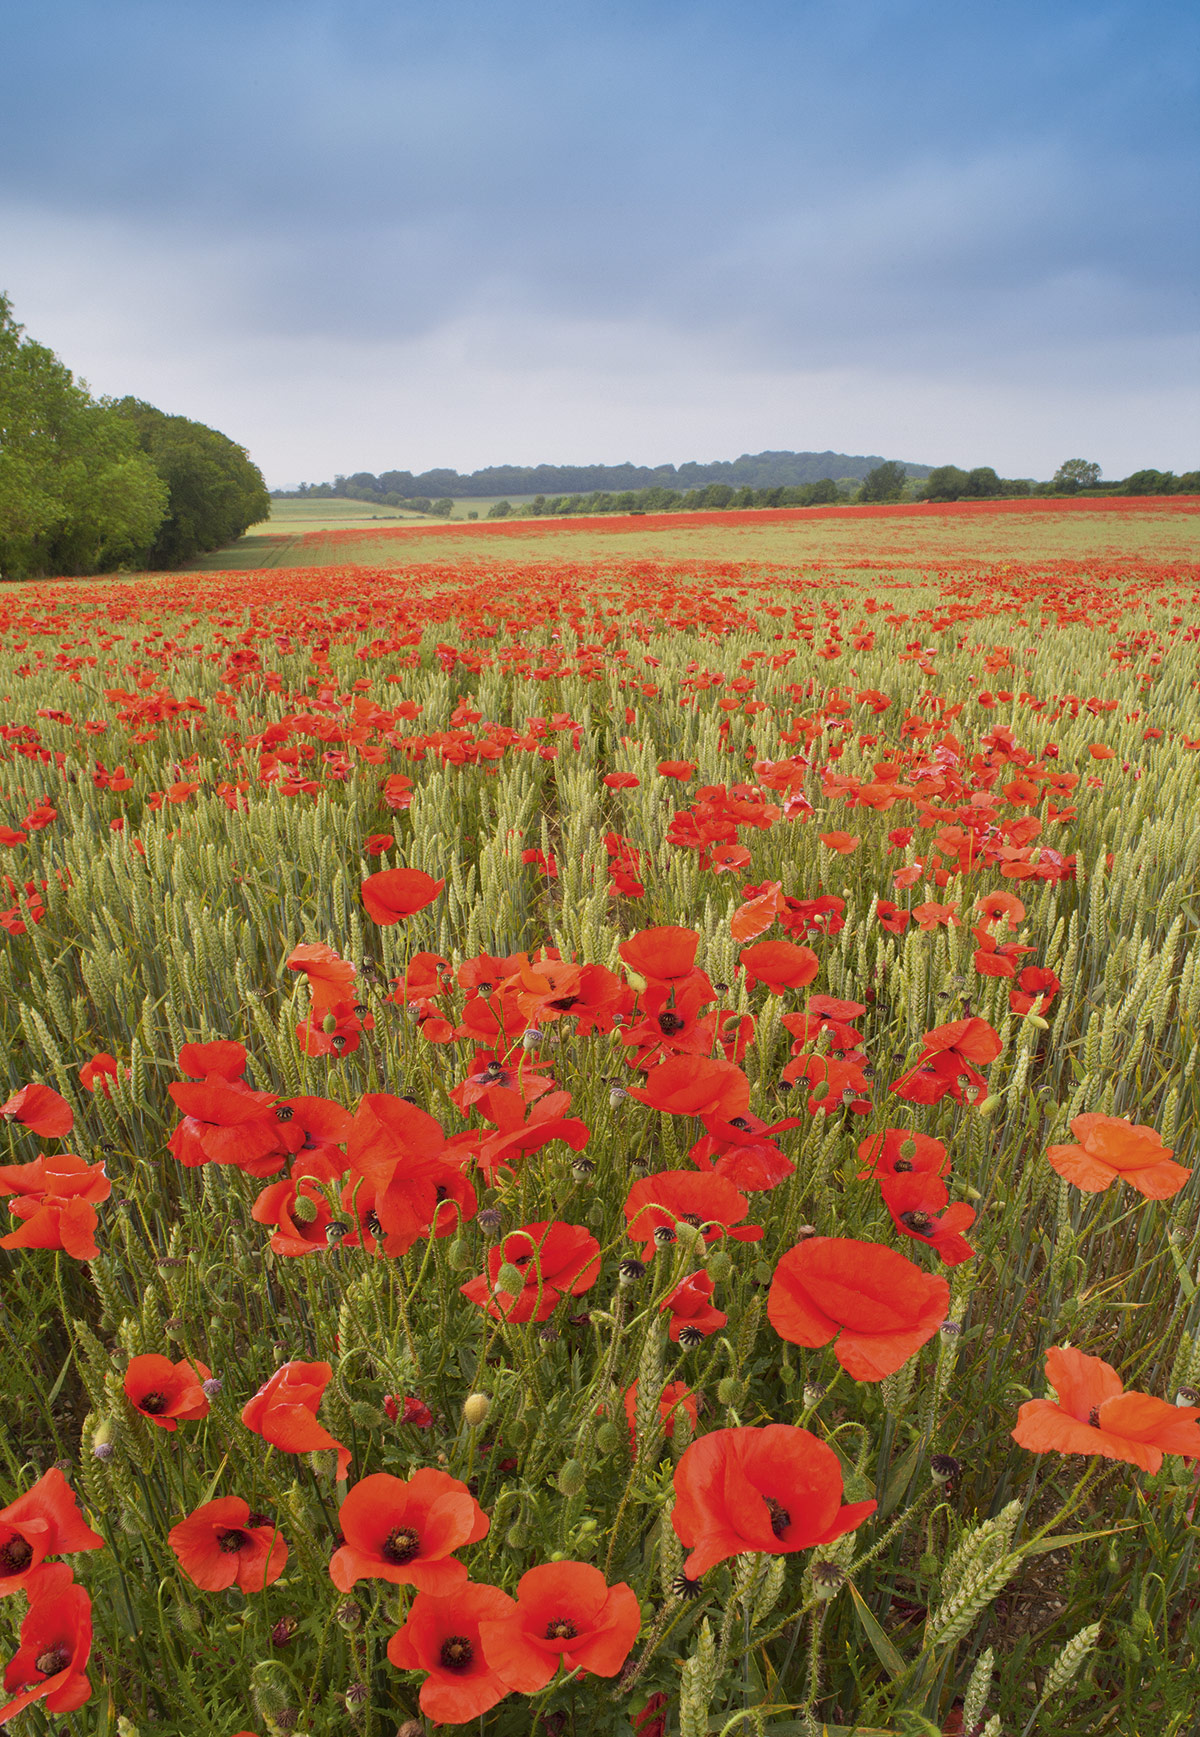 004-Poppies-in-a-wheat-field